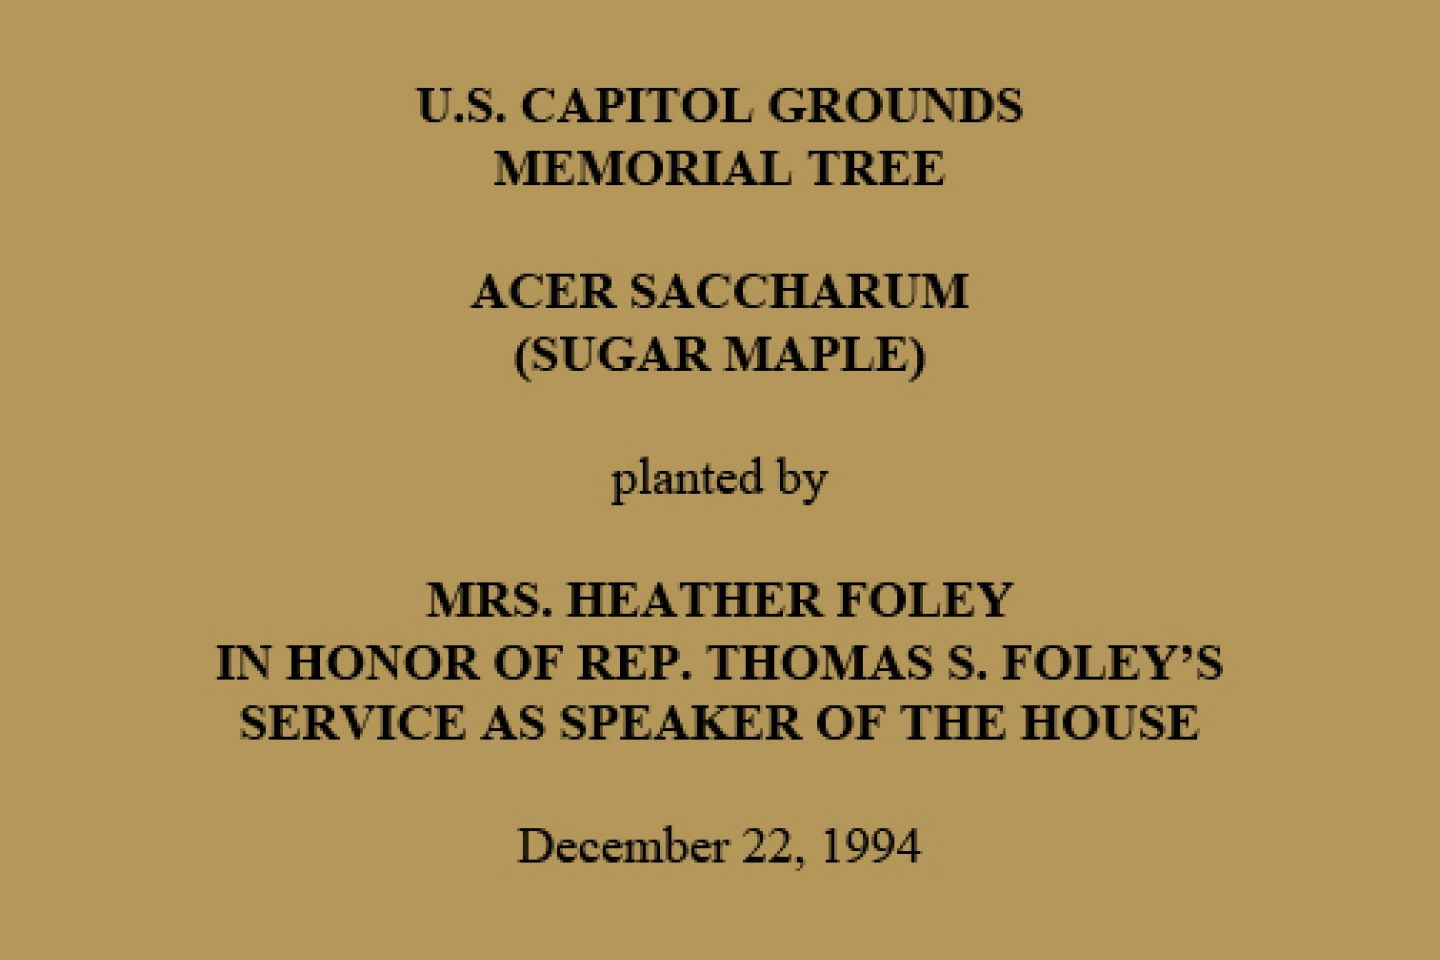 U.S. Capitol Grounds Memorial Tree  Acer saccharum (Sugar Maple)  planted by  Mrs. Heather Foley In Honor of Rep. Thomas S. Foley's Service as Speaker of the House  December 22, 1994